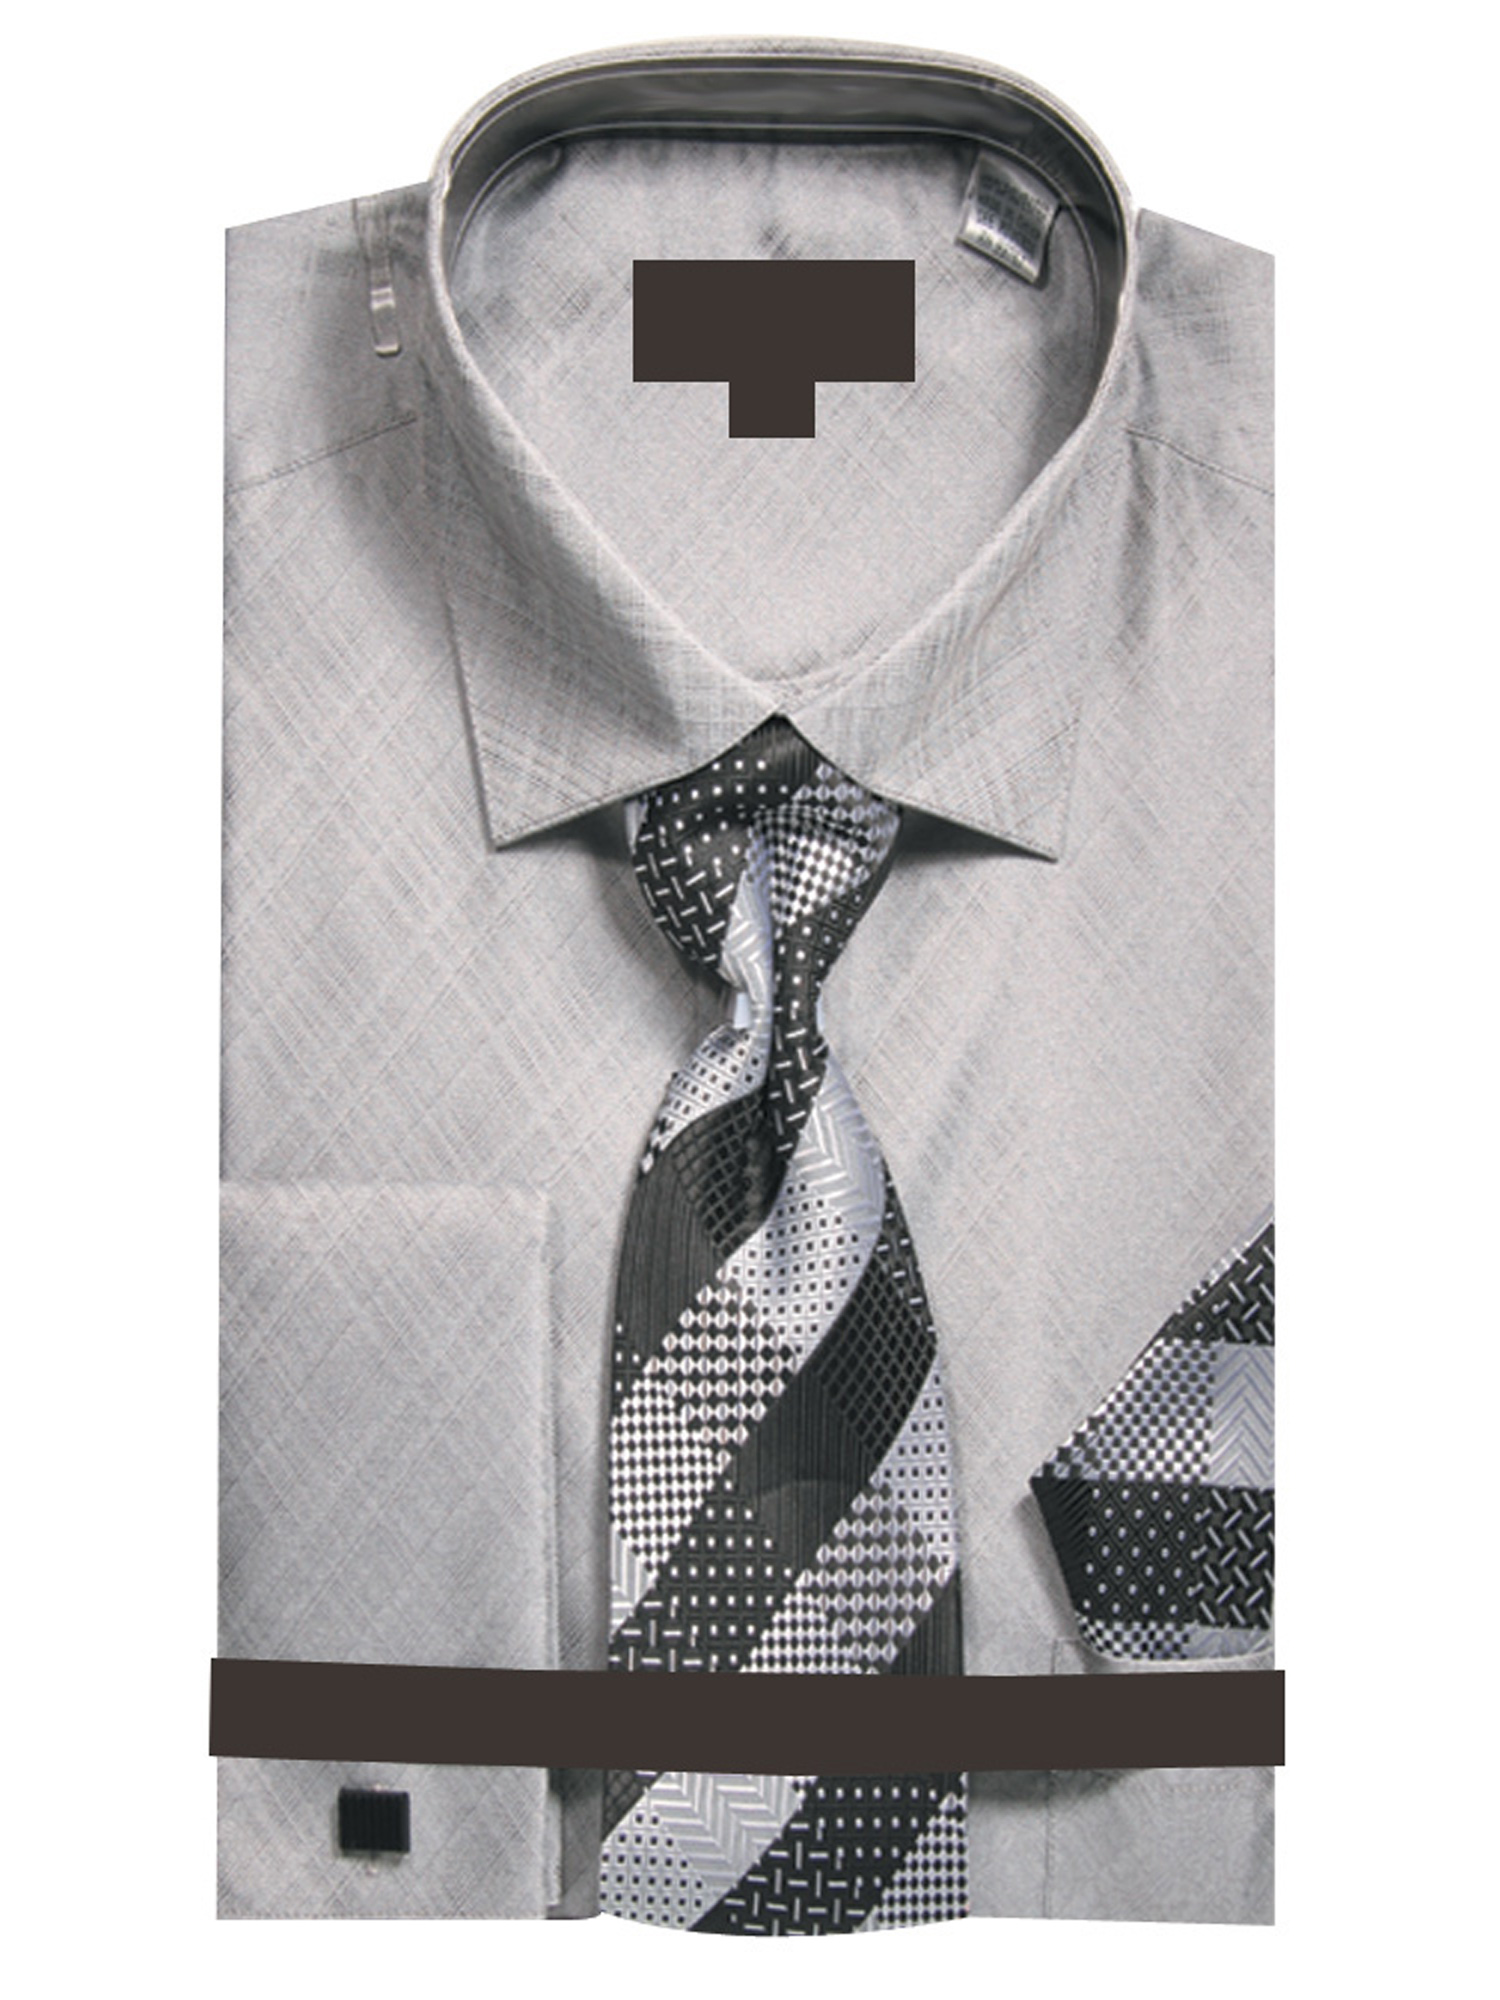 Sunrise Outlet Mens Metallic French Cuff Dress Shirt W Tie Hanky